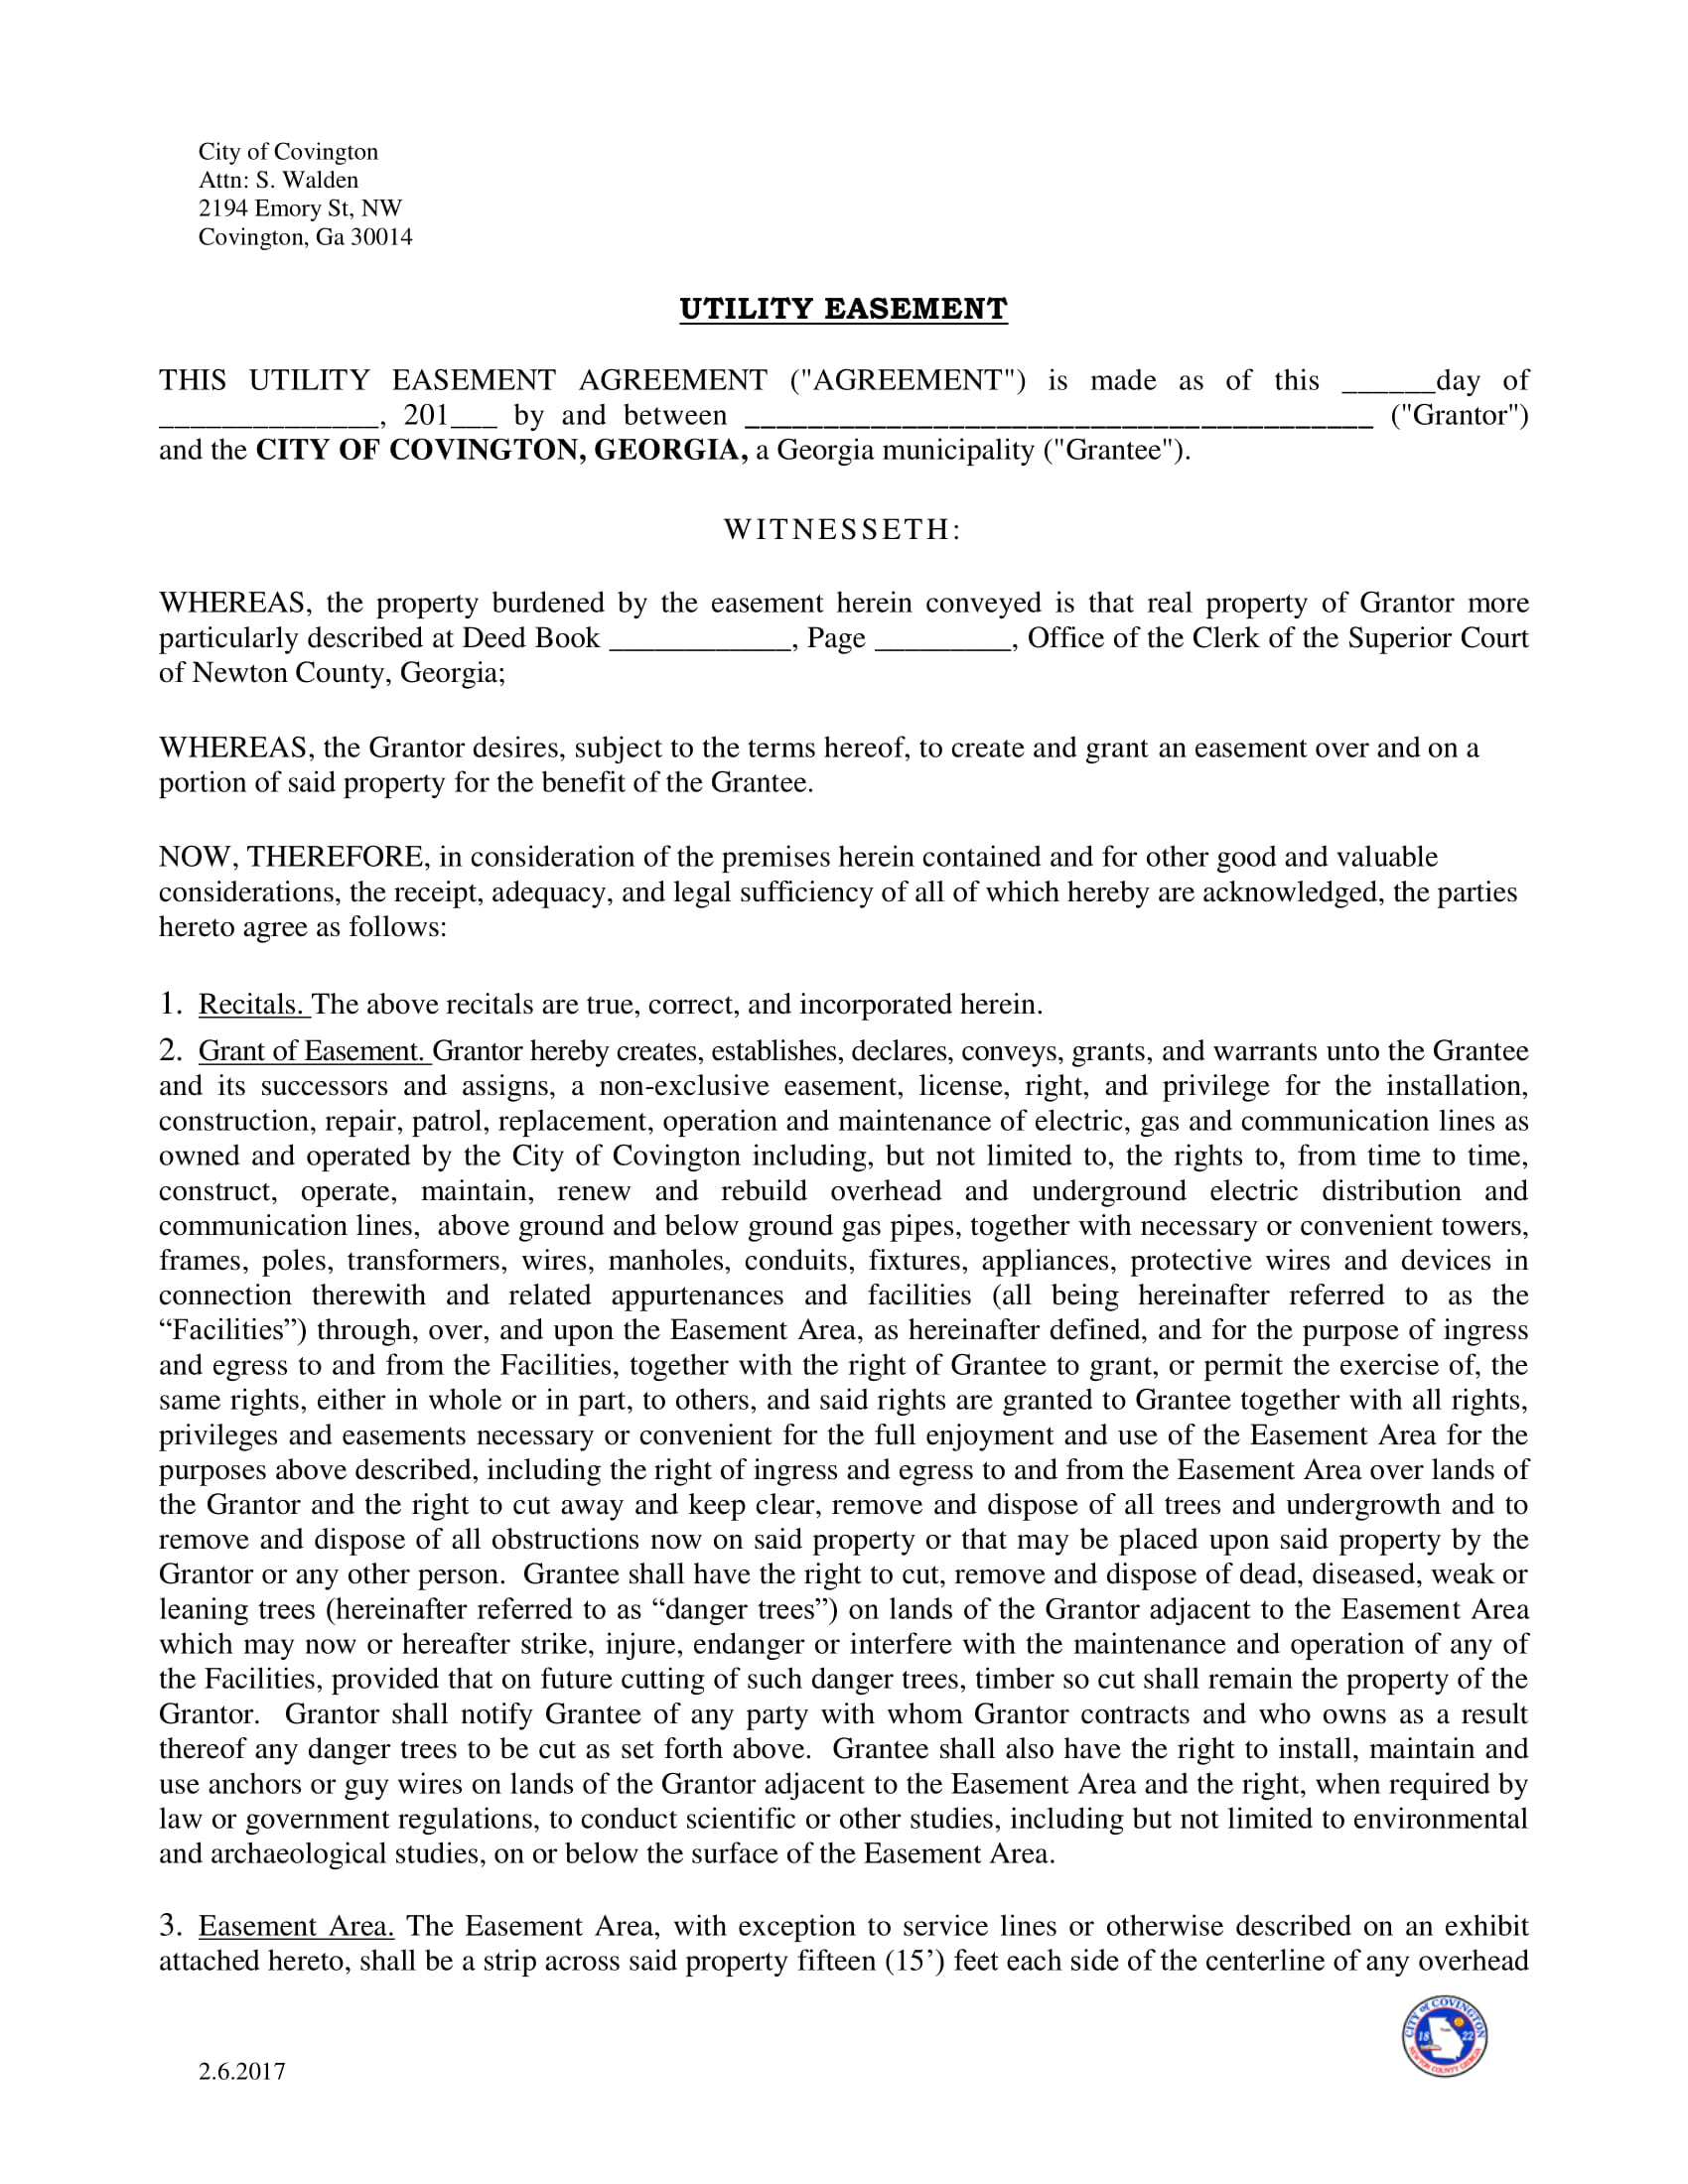 utility easement agreement contract form 1